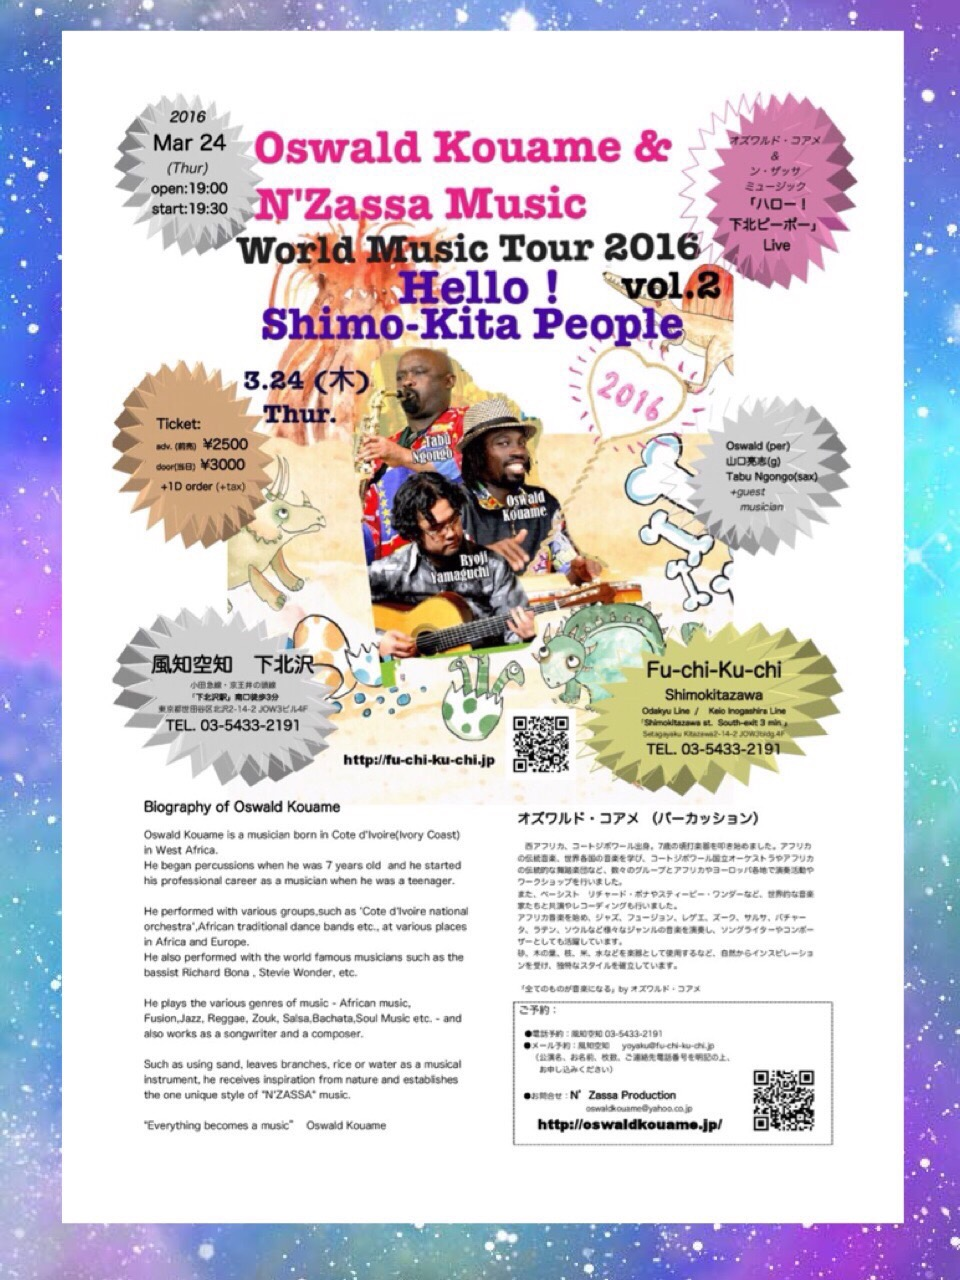 World Music Tour 2016 vol.2 ★Hello Shimo-Kita People!@Fu-chi-ku-chi,Shimo-Kitazawa